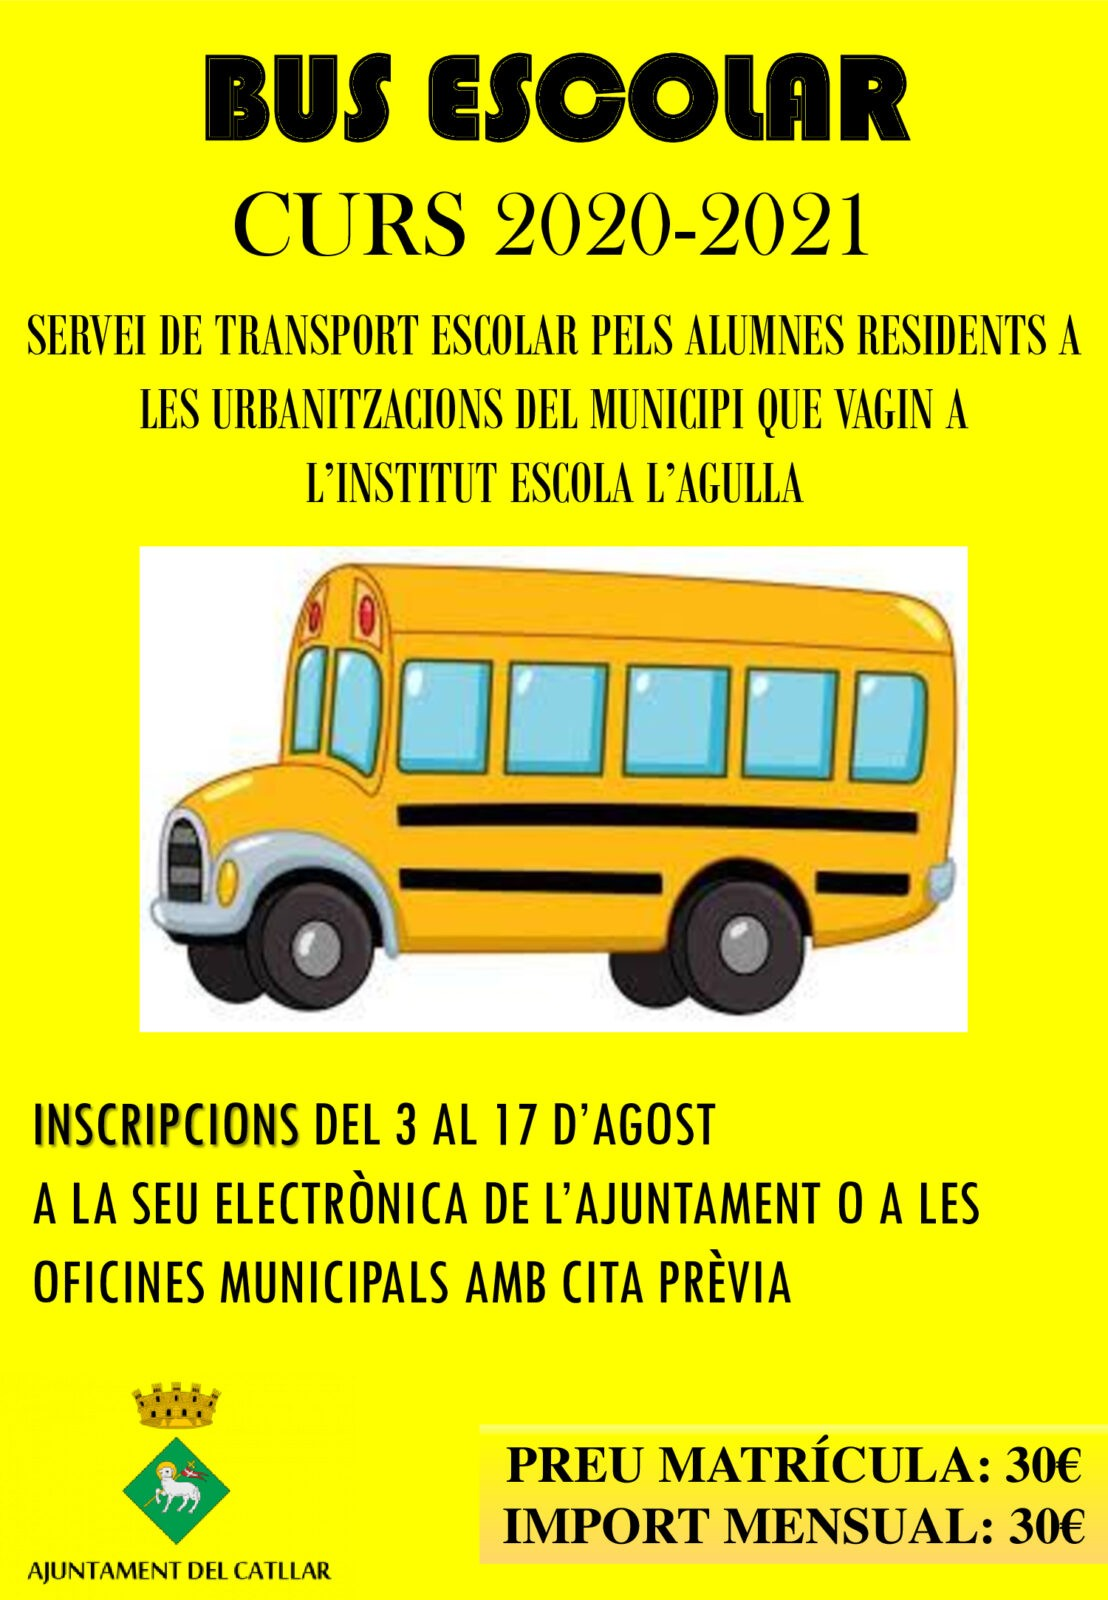 INSCRIPCIONES TRANSPORTE ESCOLAR 2020-2021